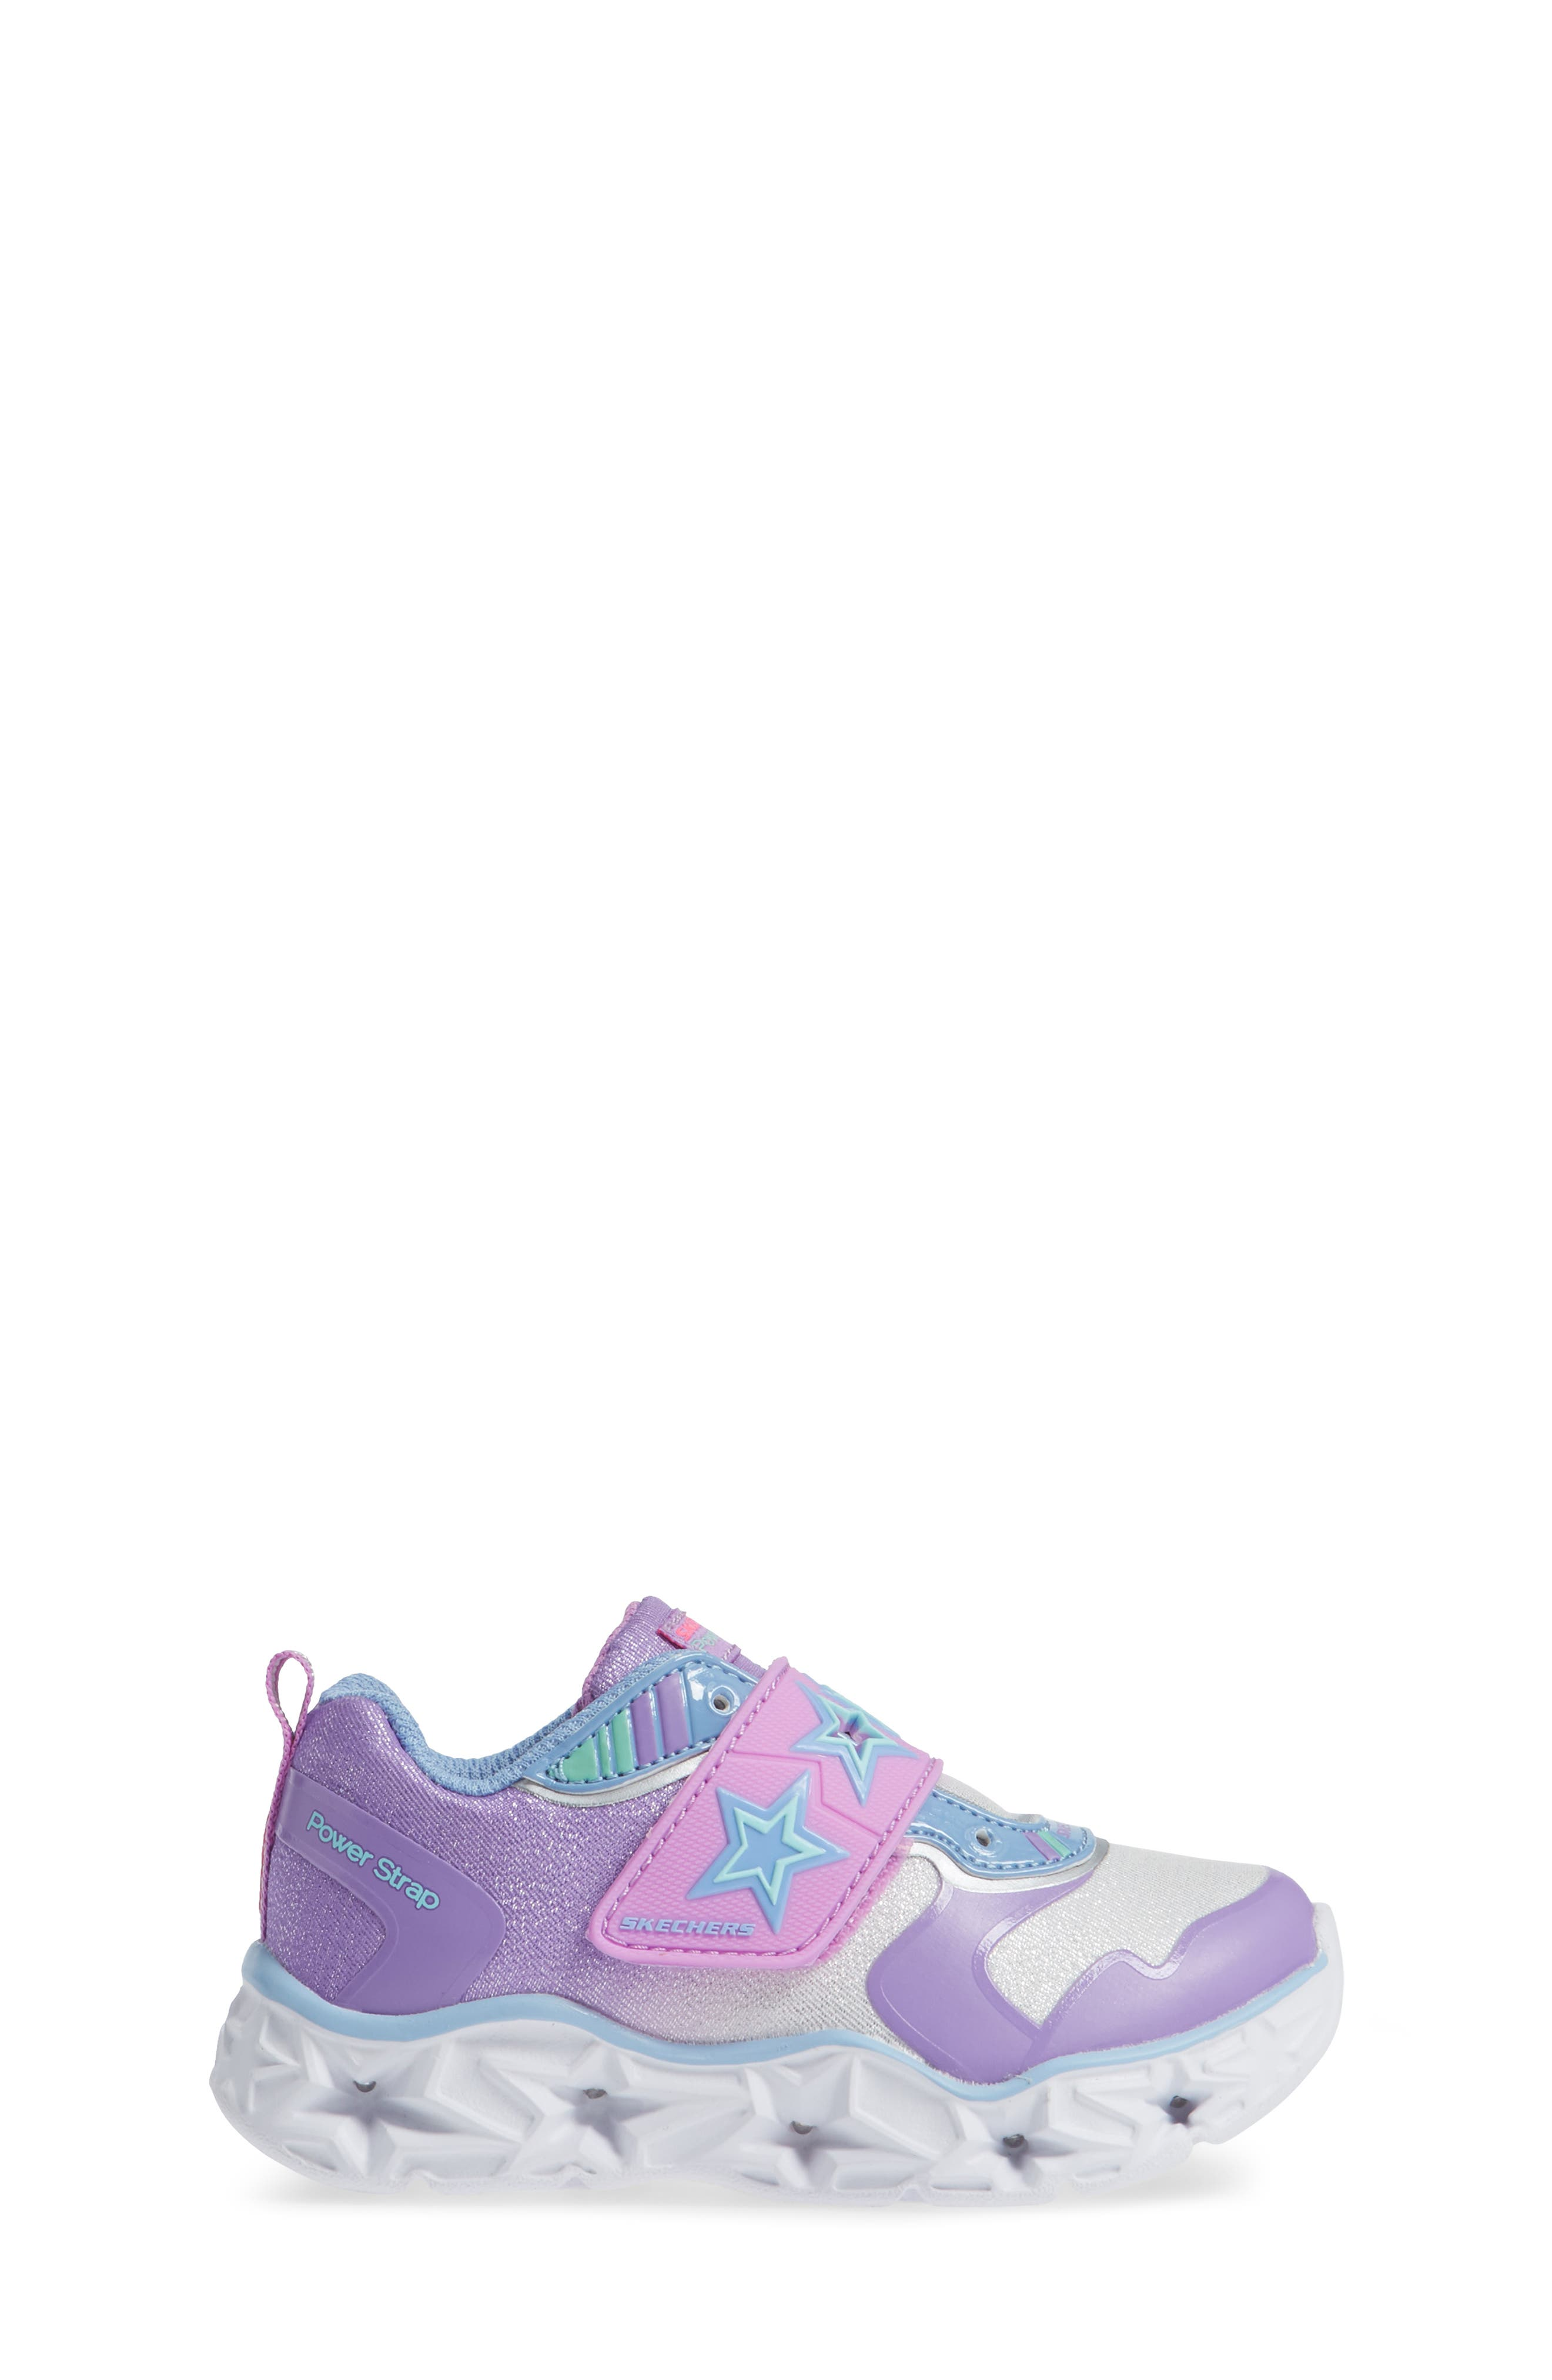 Galaxy Lights Sneakers,                             Alternate thumbnail 3, color,                             500